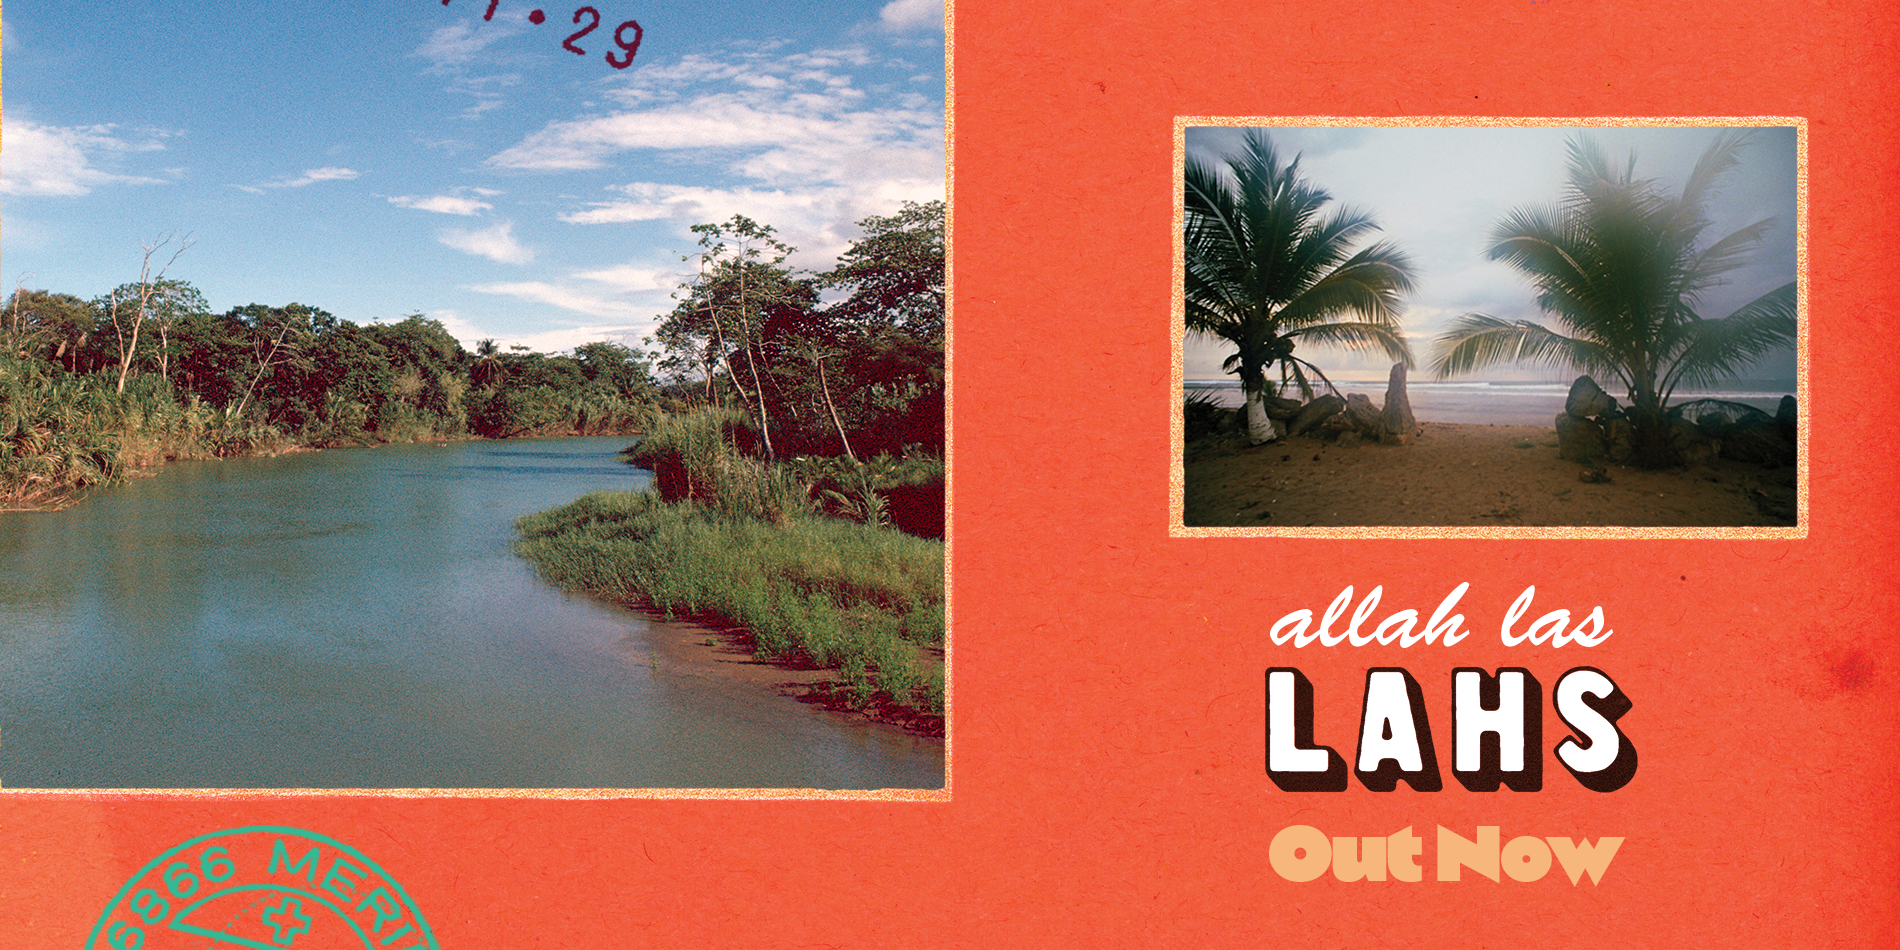 Allah Las Lahs Out Now Banner